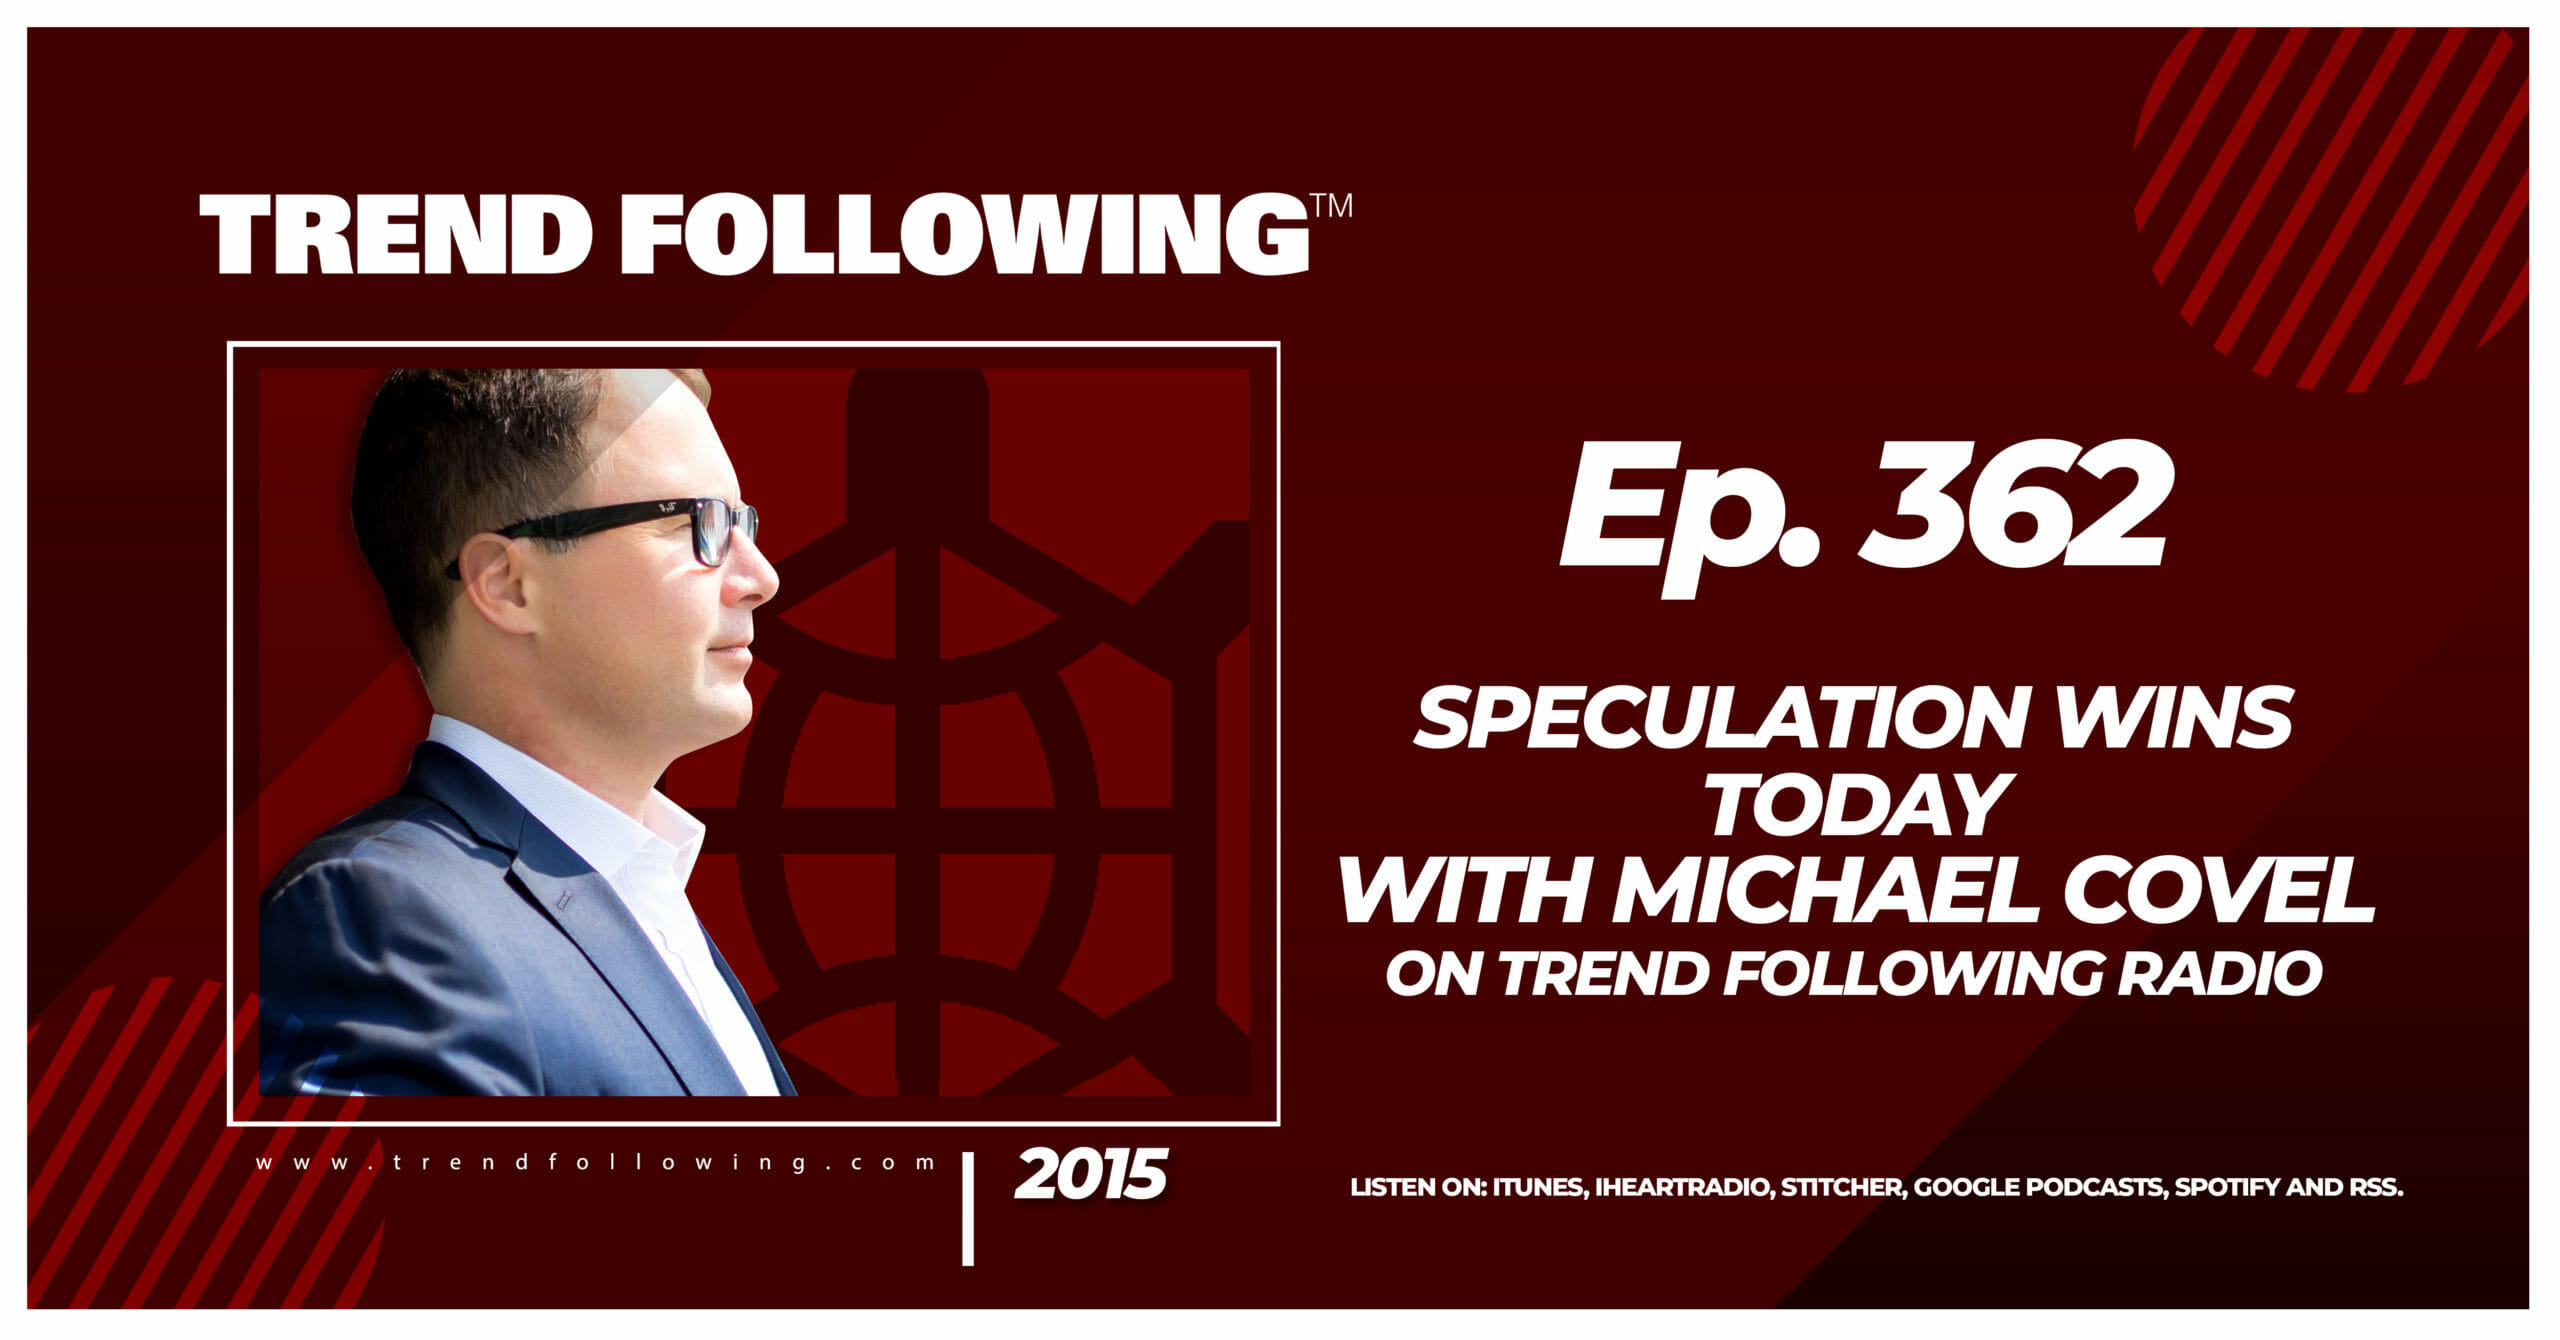 Speculation Wins Today with Michael Covel on Trend Following Radio